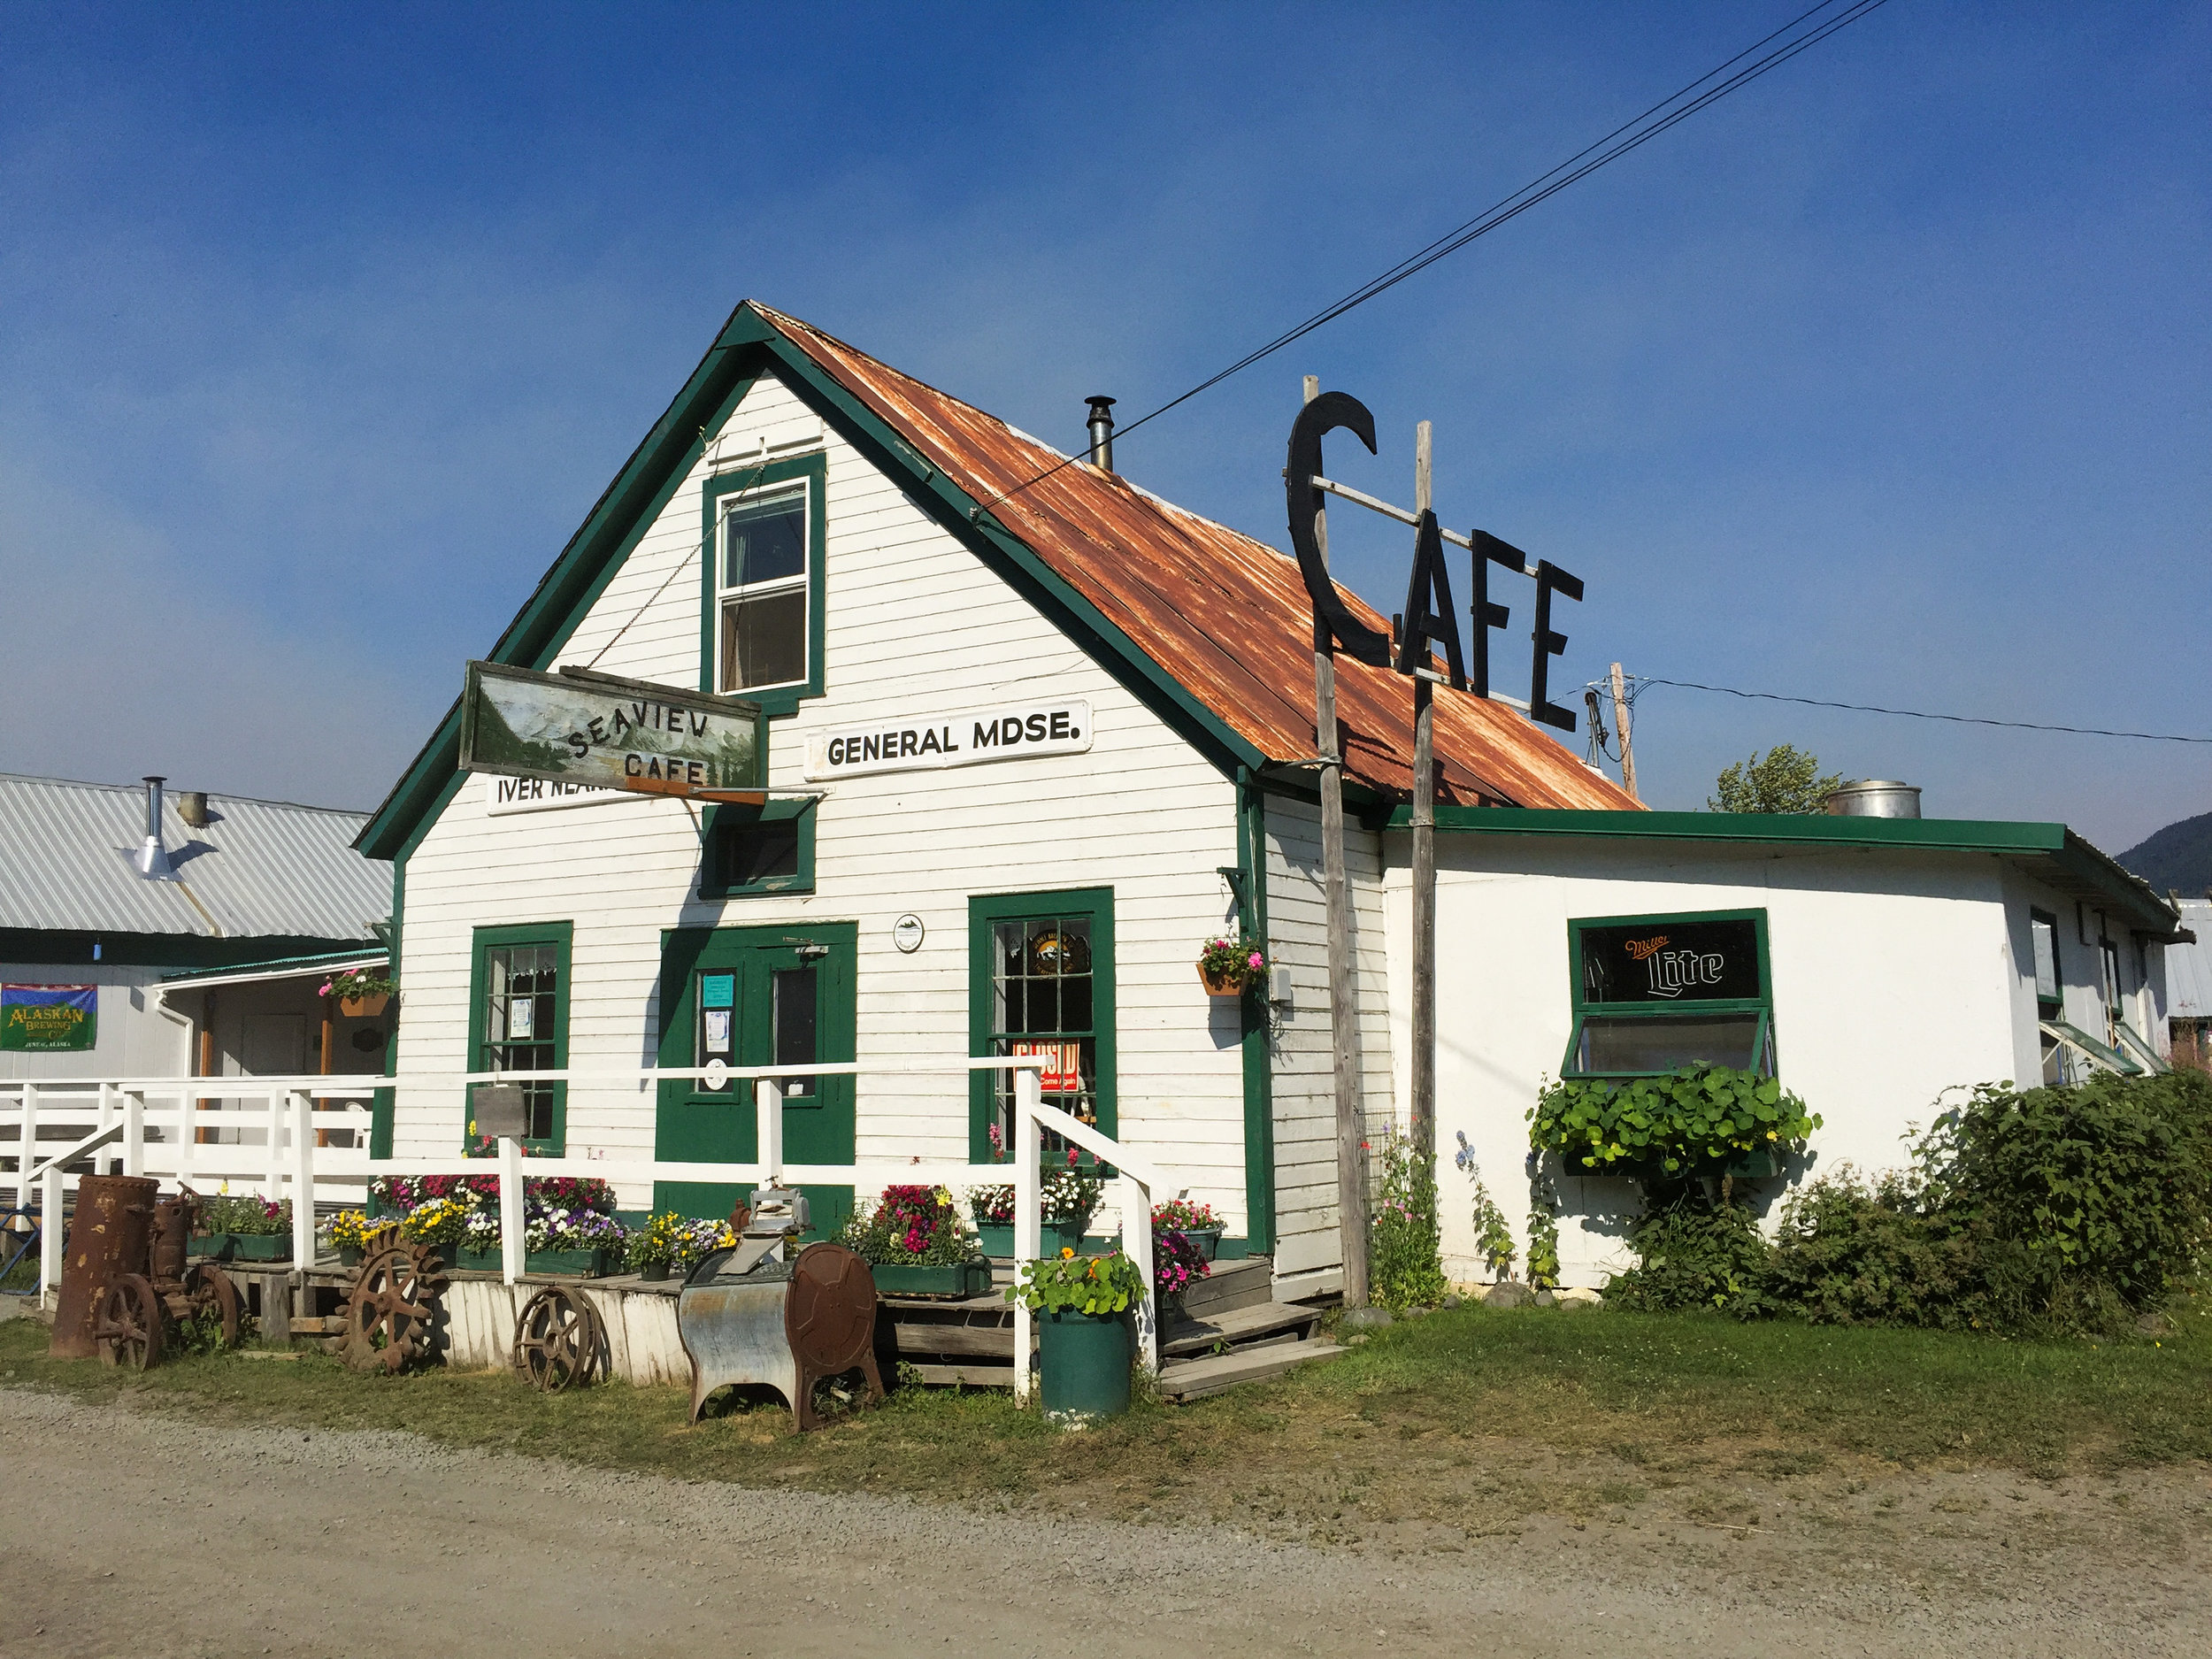 Hope's famous Seaview Cafe